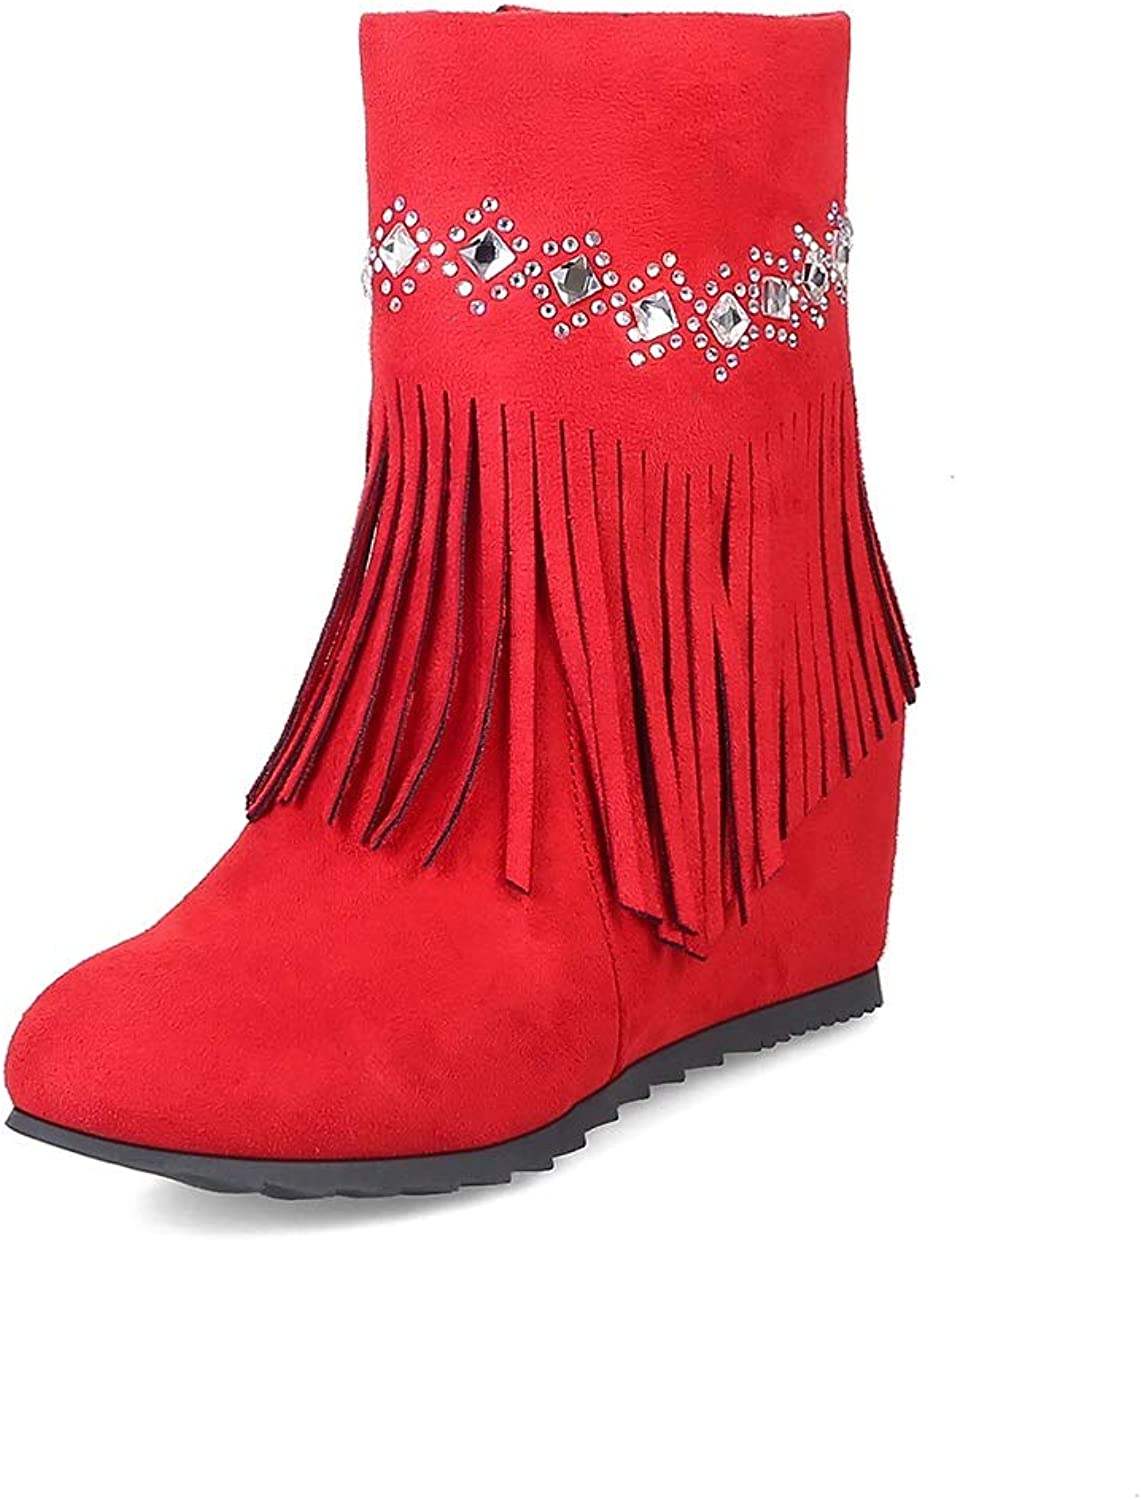 Women's Booties, Low-Heel Fall Winter Fashion Chelsea Boots Ladies Tassel Solid color Ankle Boots (color   Red Plus Hair, Size   38)